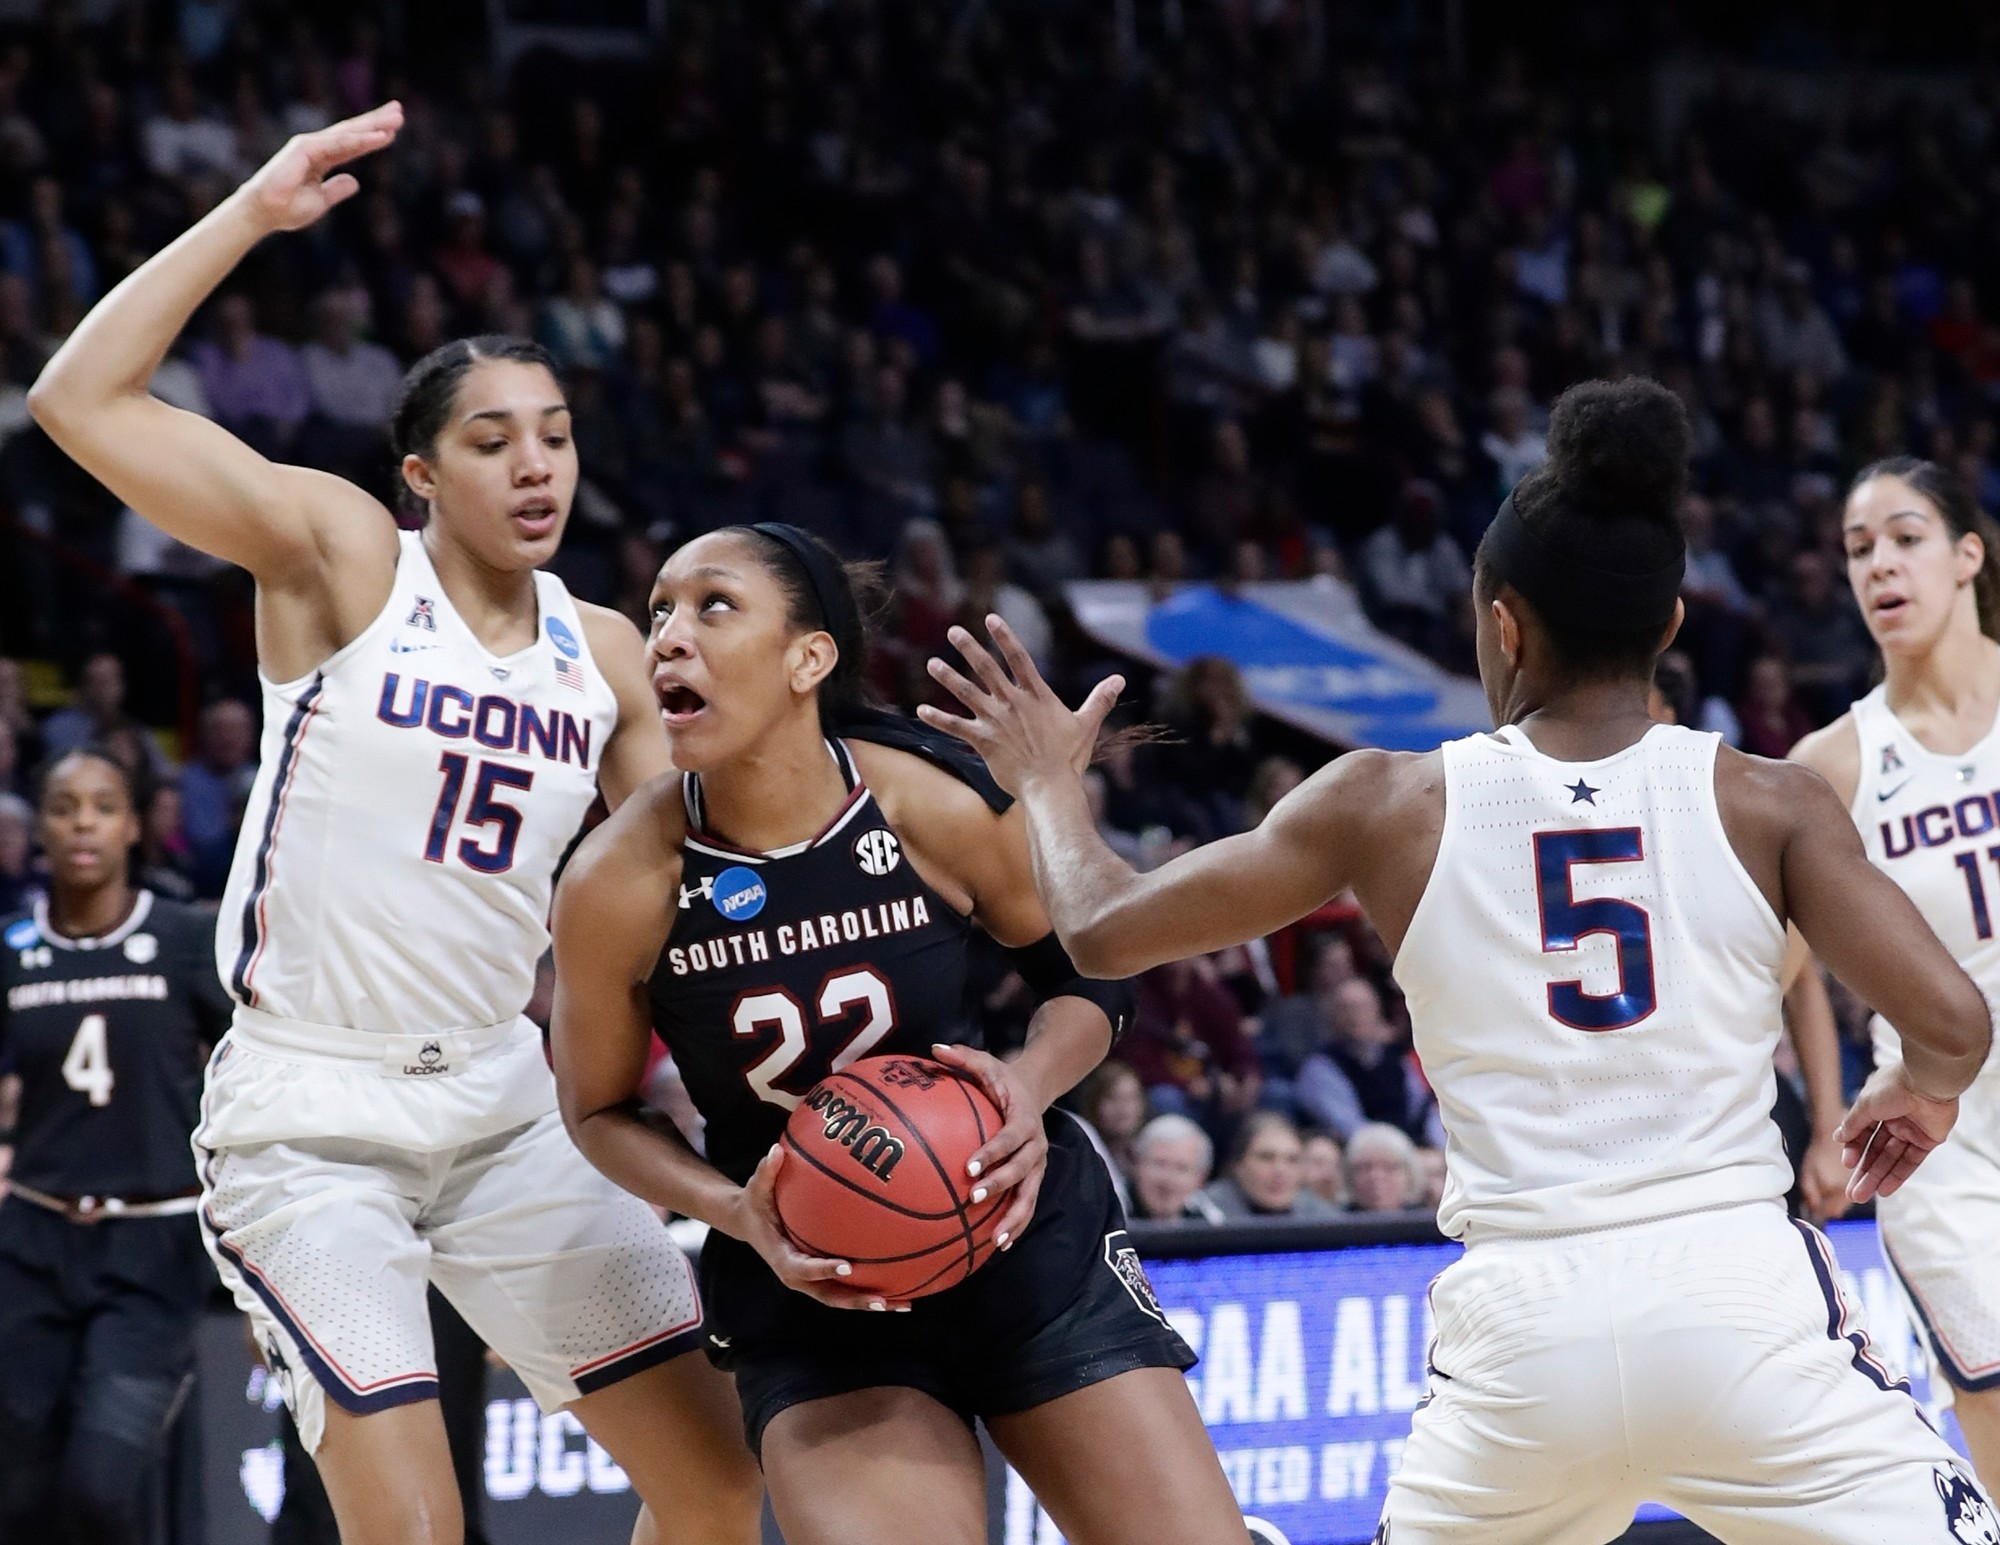 South Carolina's A'ja Wilson (22) drives past Connecticut's Gabby Williams (15) and Crystal Dangerfield (5) during the Gamecocks' 94-65 loss in the Albany Regional championship game of the women's NCAA tournament on Monday in Albany, N.Y.